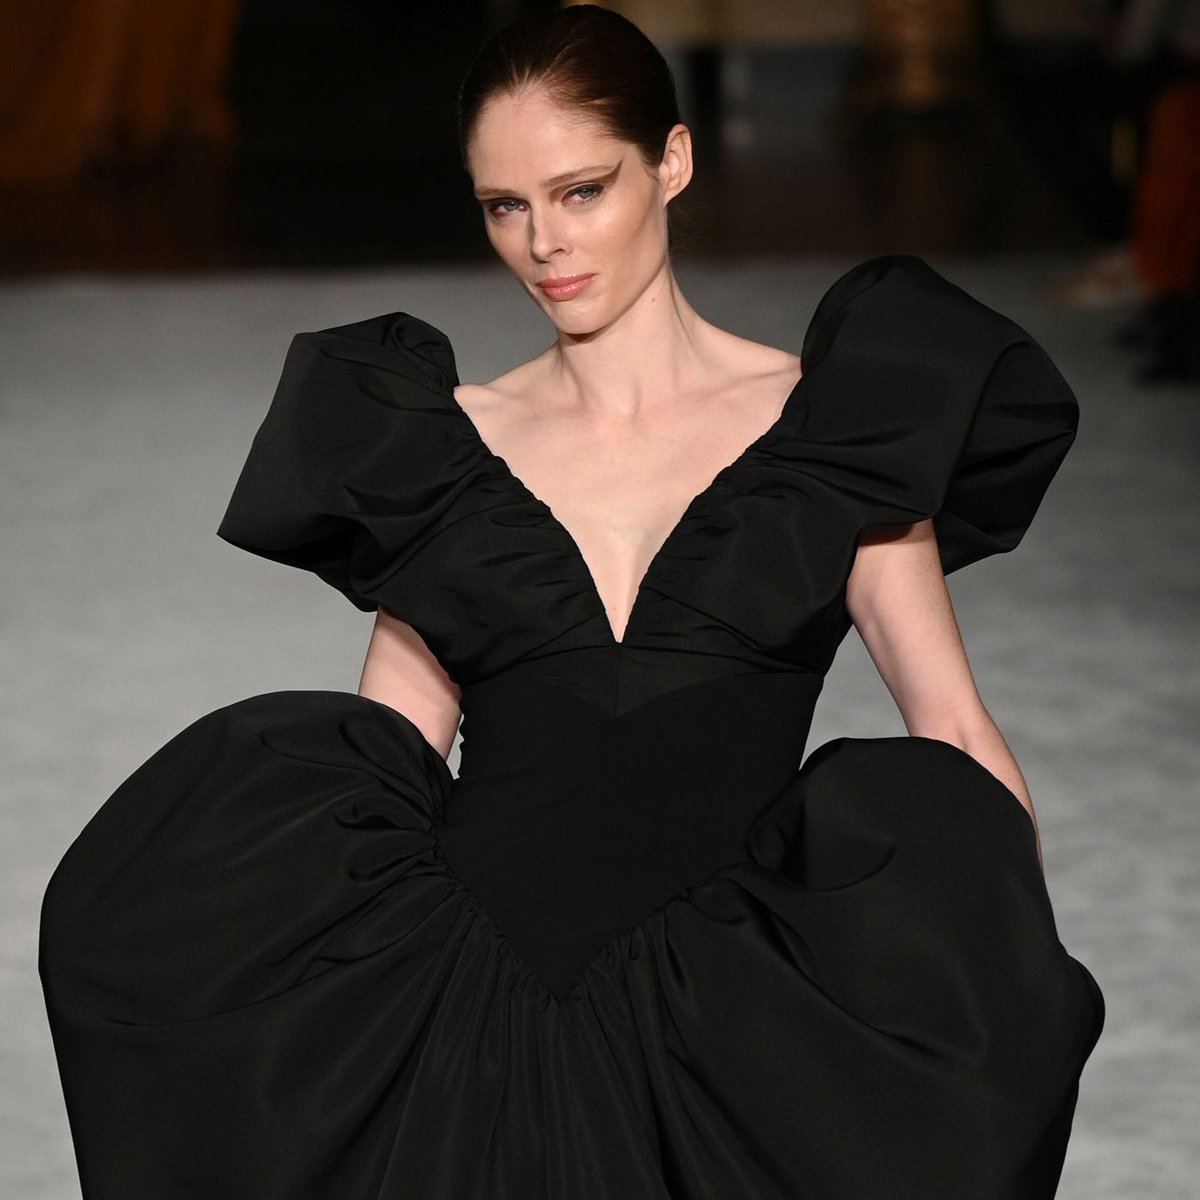 Coco Rocha Returns to the Fashion Week Runway 3 Months After Giving Birth